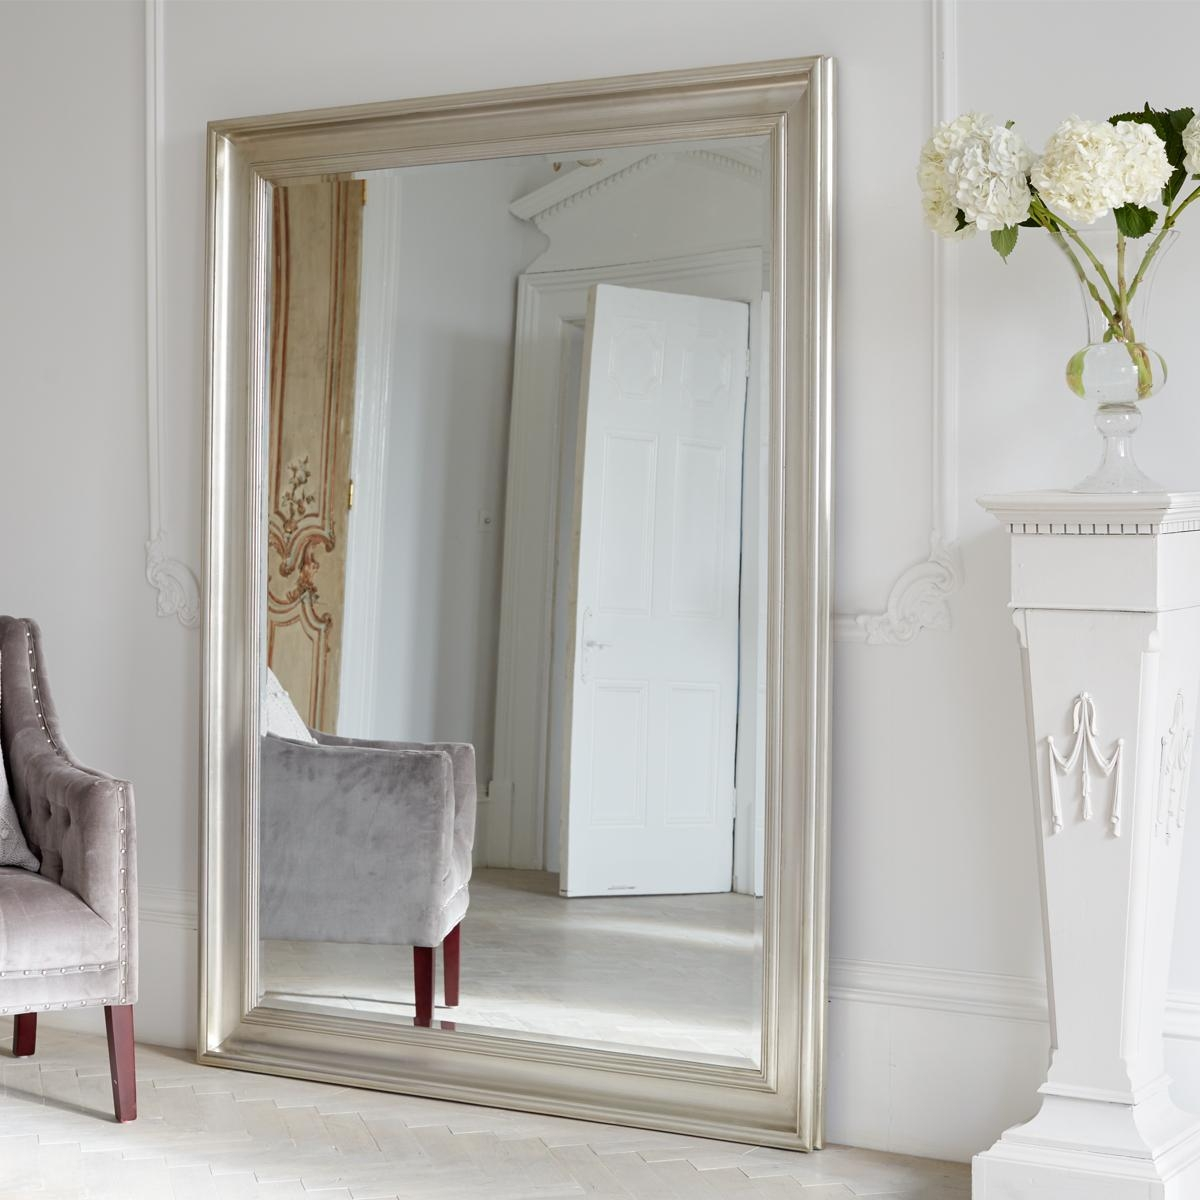 Flooring : Wall Mirrors Full Length Oversized Vintage Floor Cheap Regarding Vintage Floor Length Mirror (Image 16 of 20)